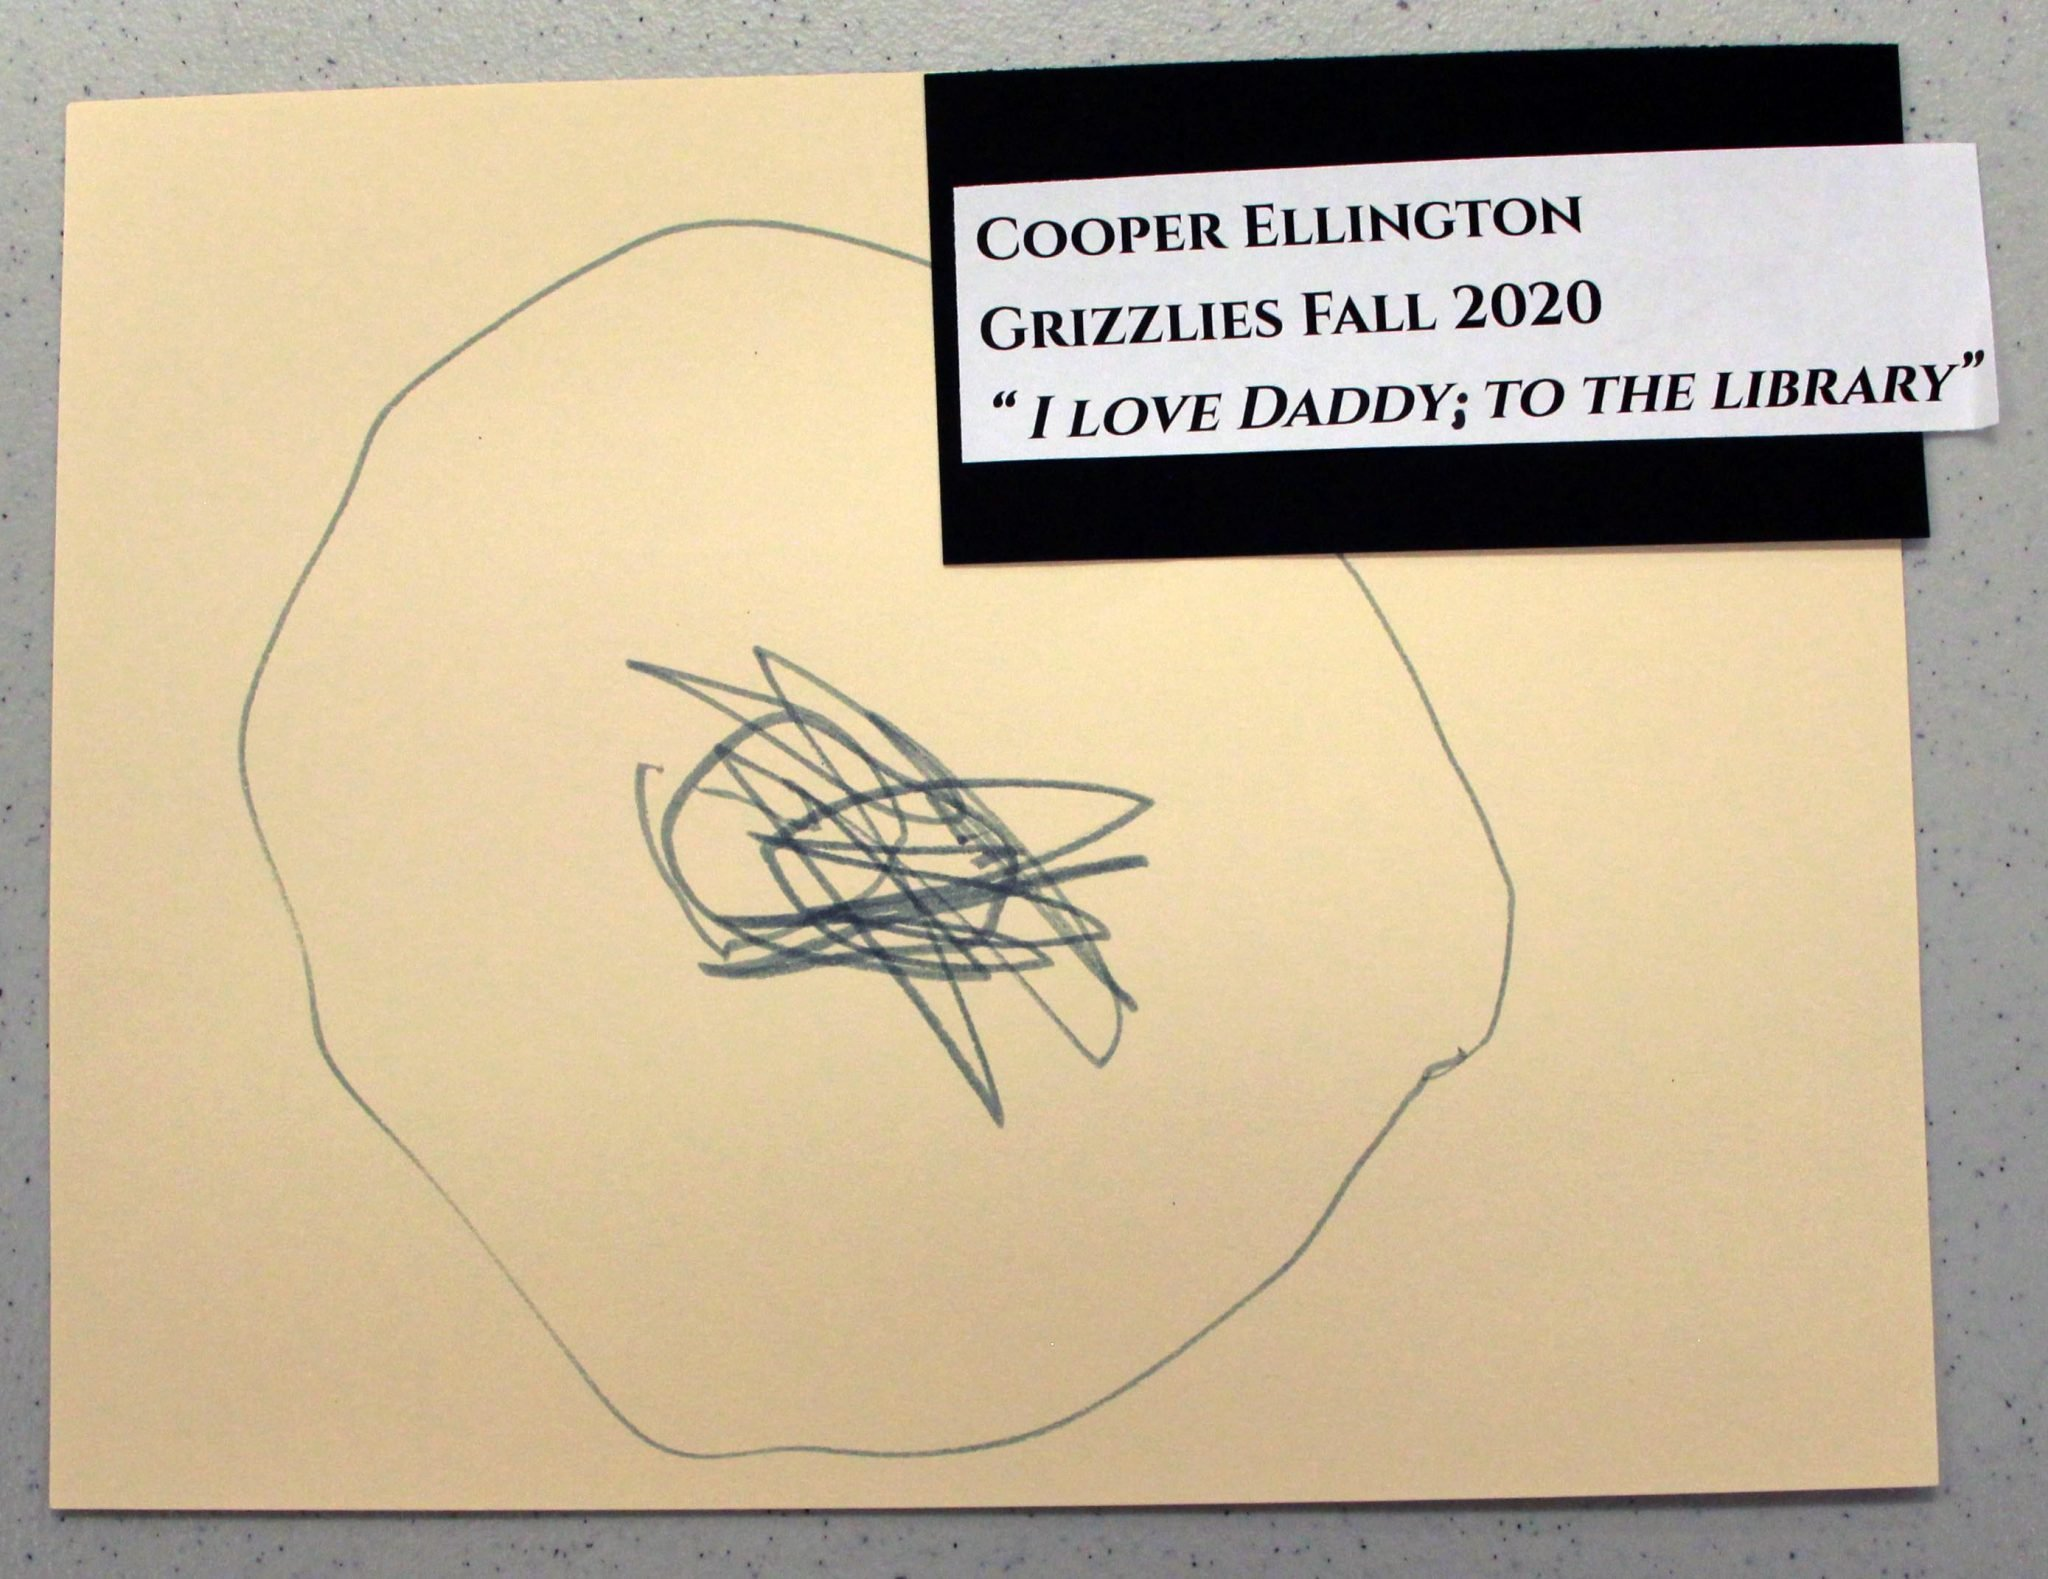 Cooper Ellington, of Grizzlies group, drawing, Fall 2020